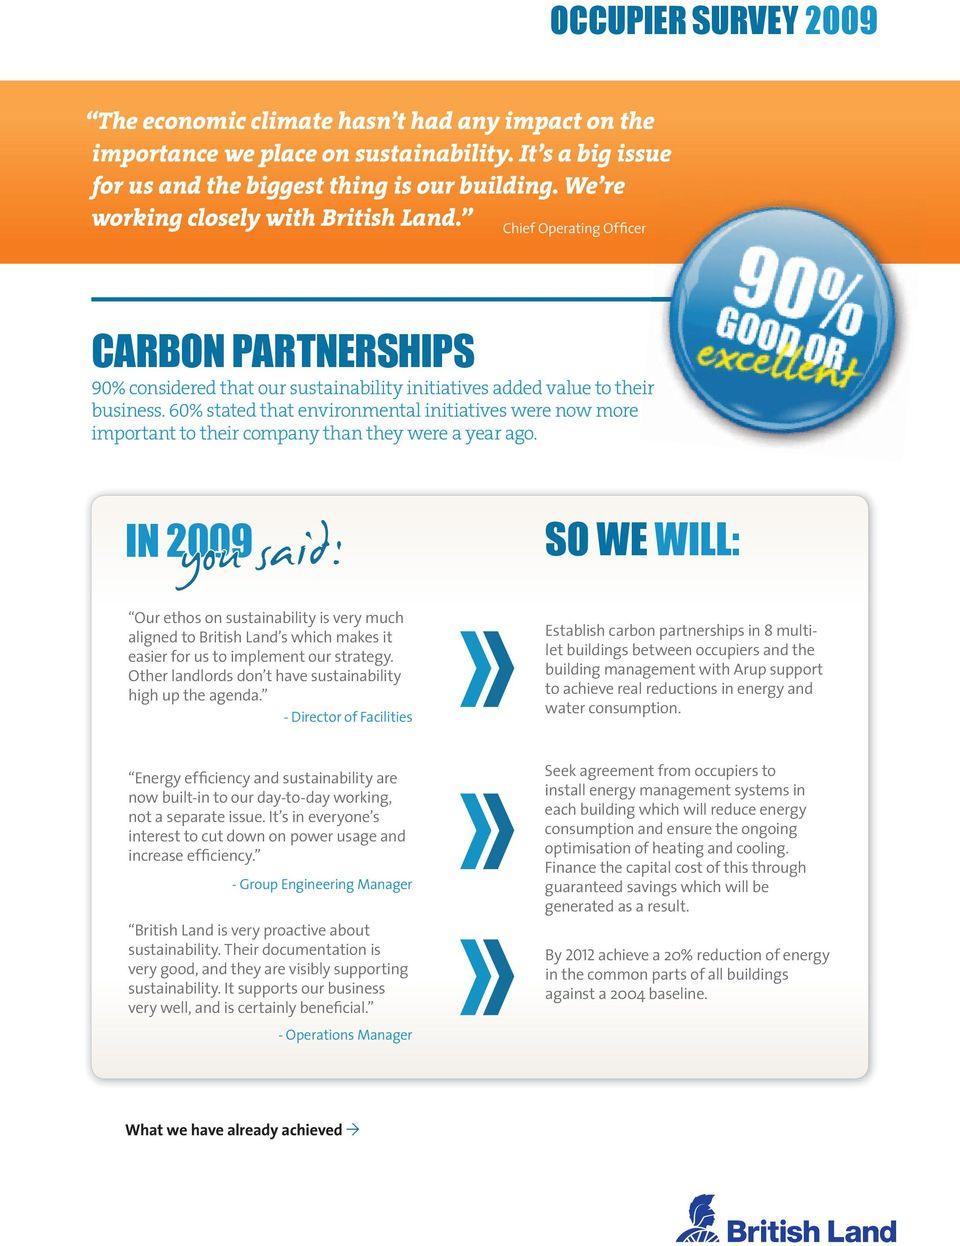 60% stated that environmental initiatives were now more important to their company than they were a year ago.